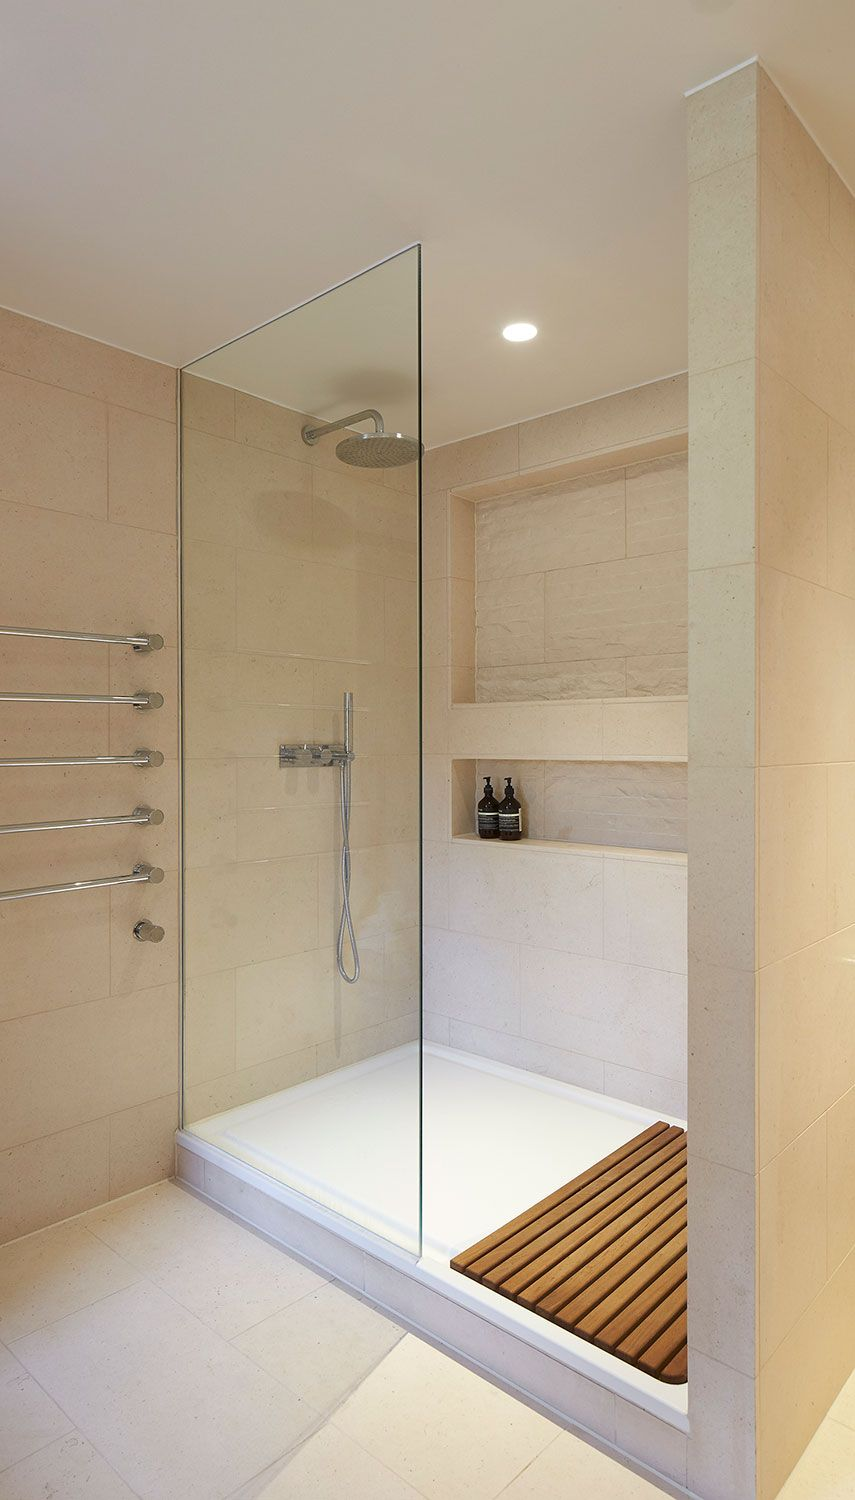 Design Shower Room Design a super cool residential shower suite fitted with natural stone wall and floor tiles from